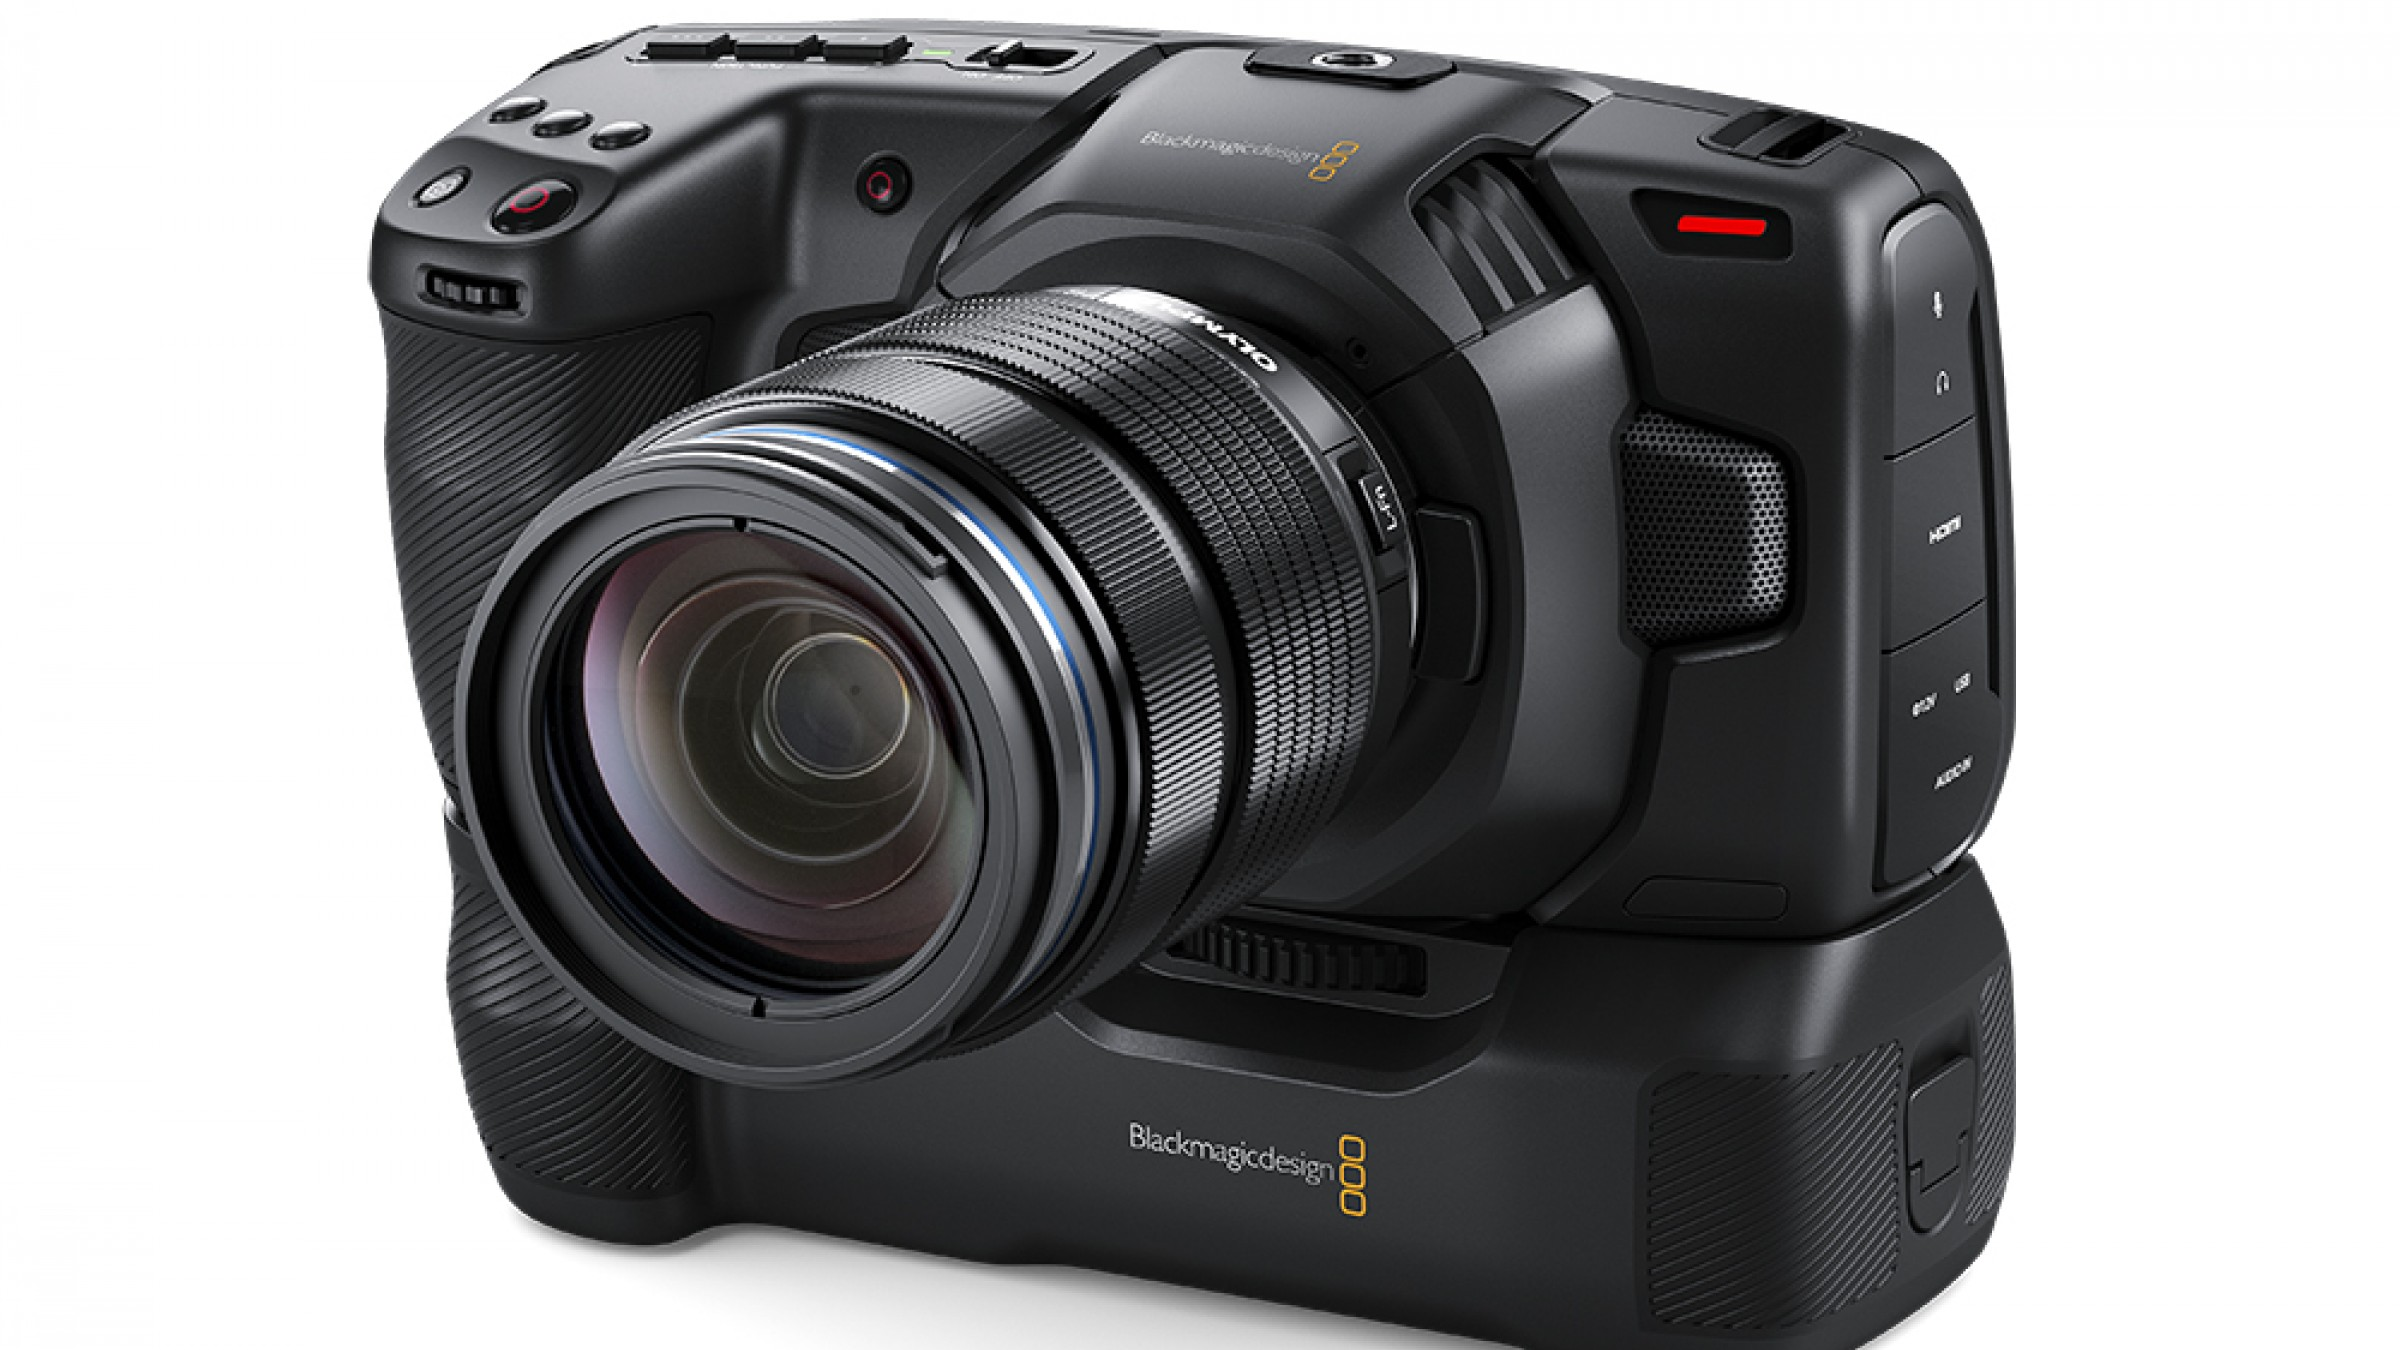 Blackmagic S 4k Pocket Cinema Camera Is Getting New Upgrades